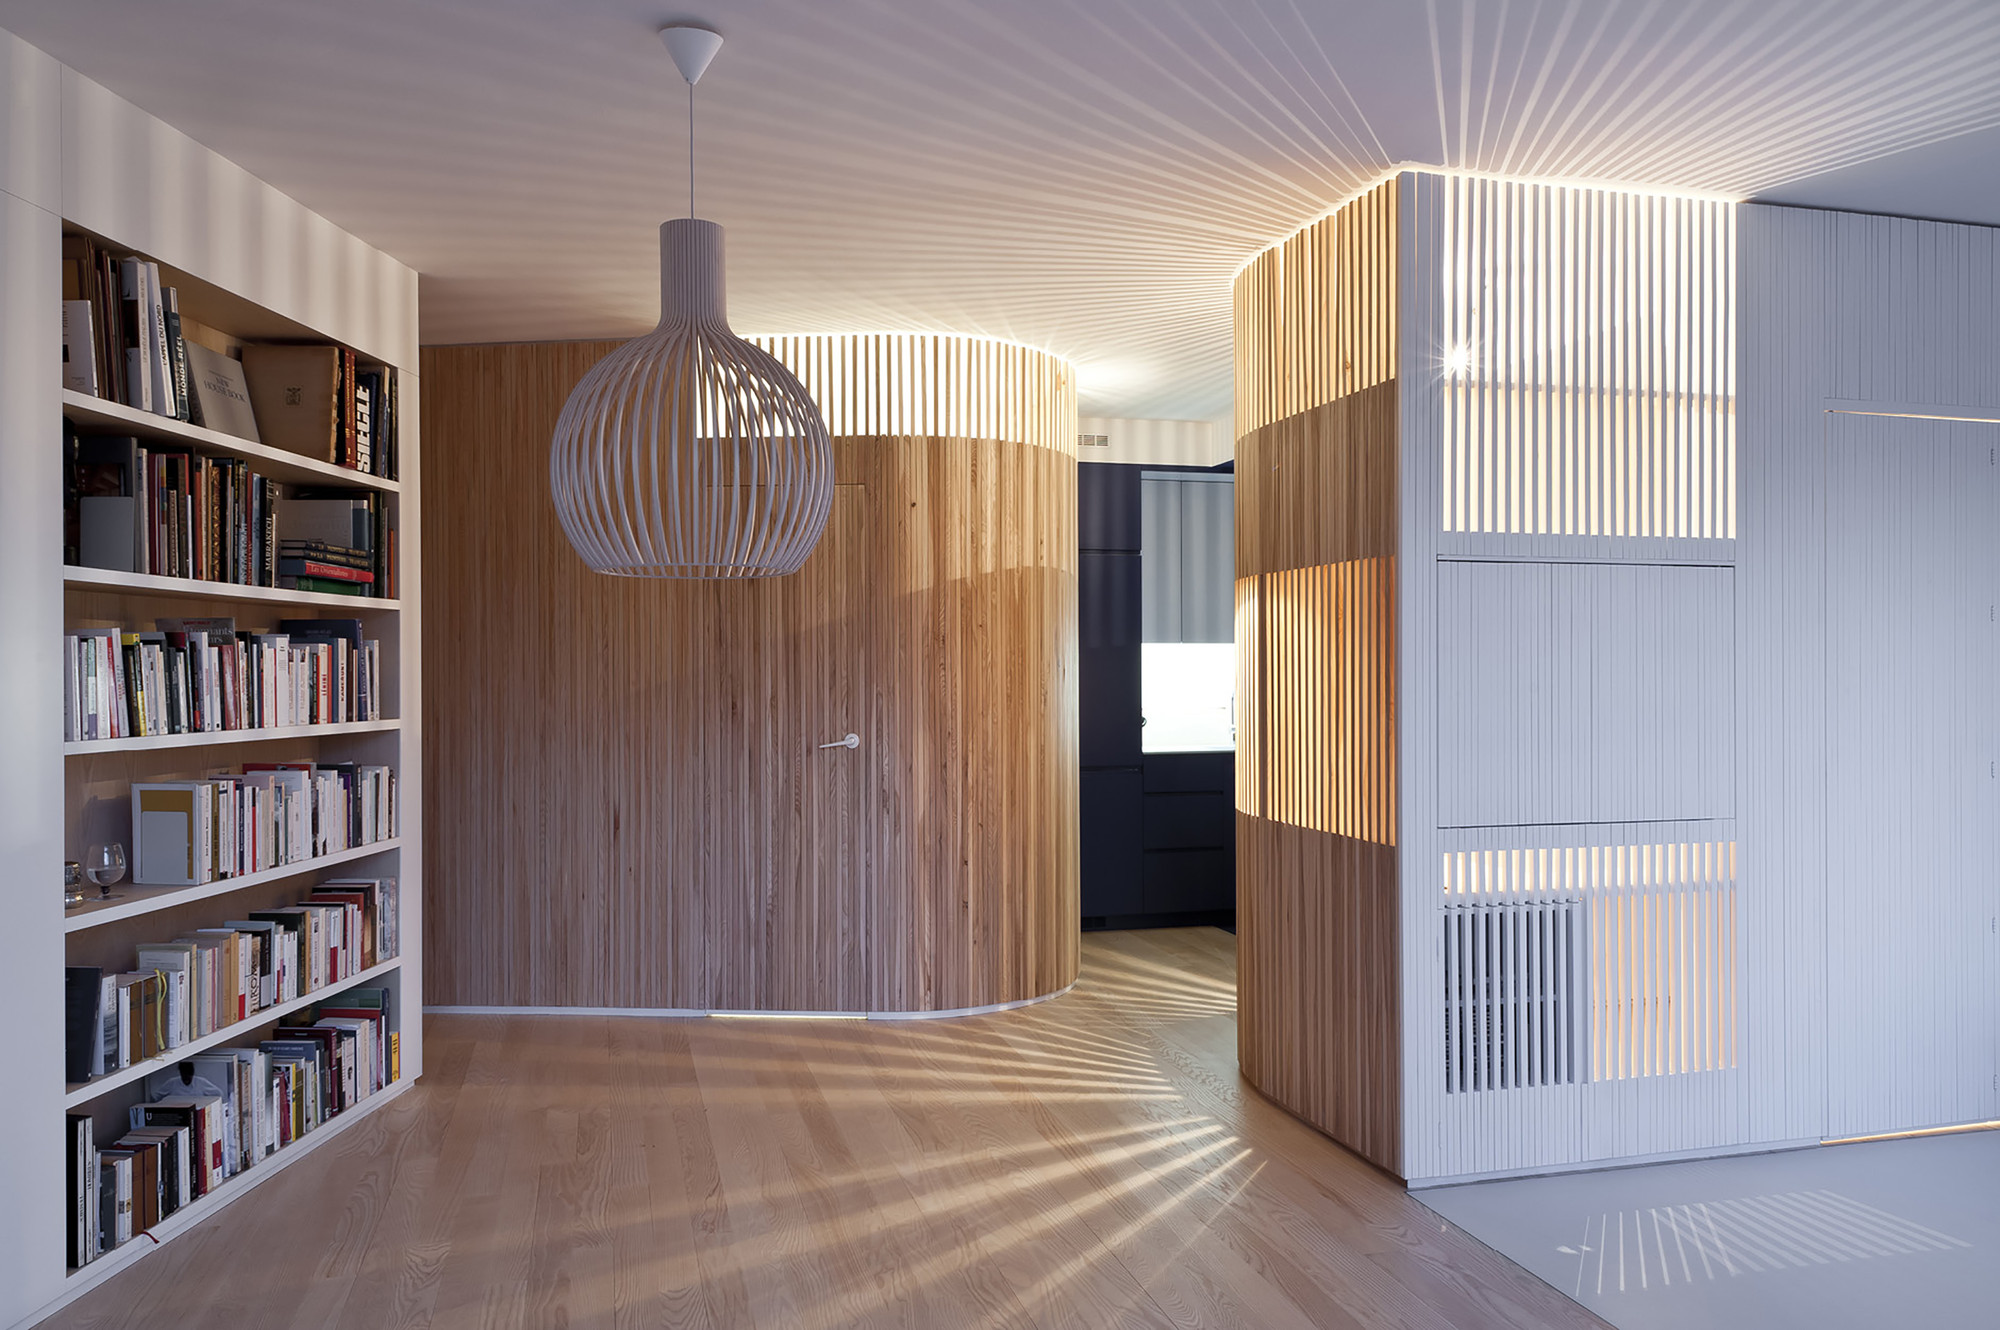 Home renovation julien joly architecture archdaily for Architecture courbe